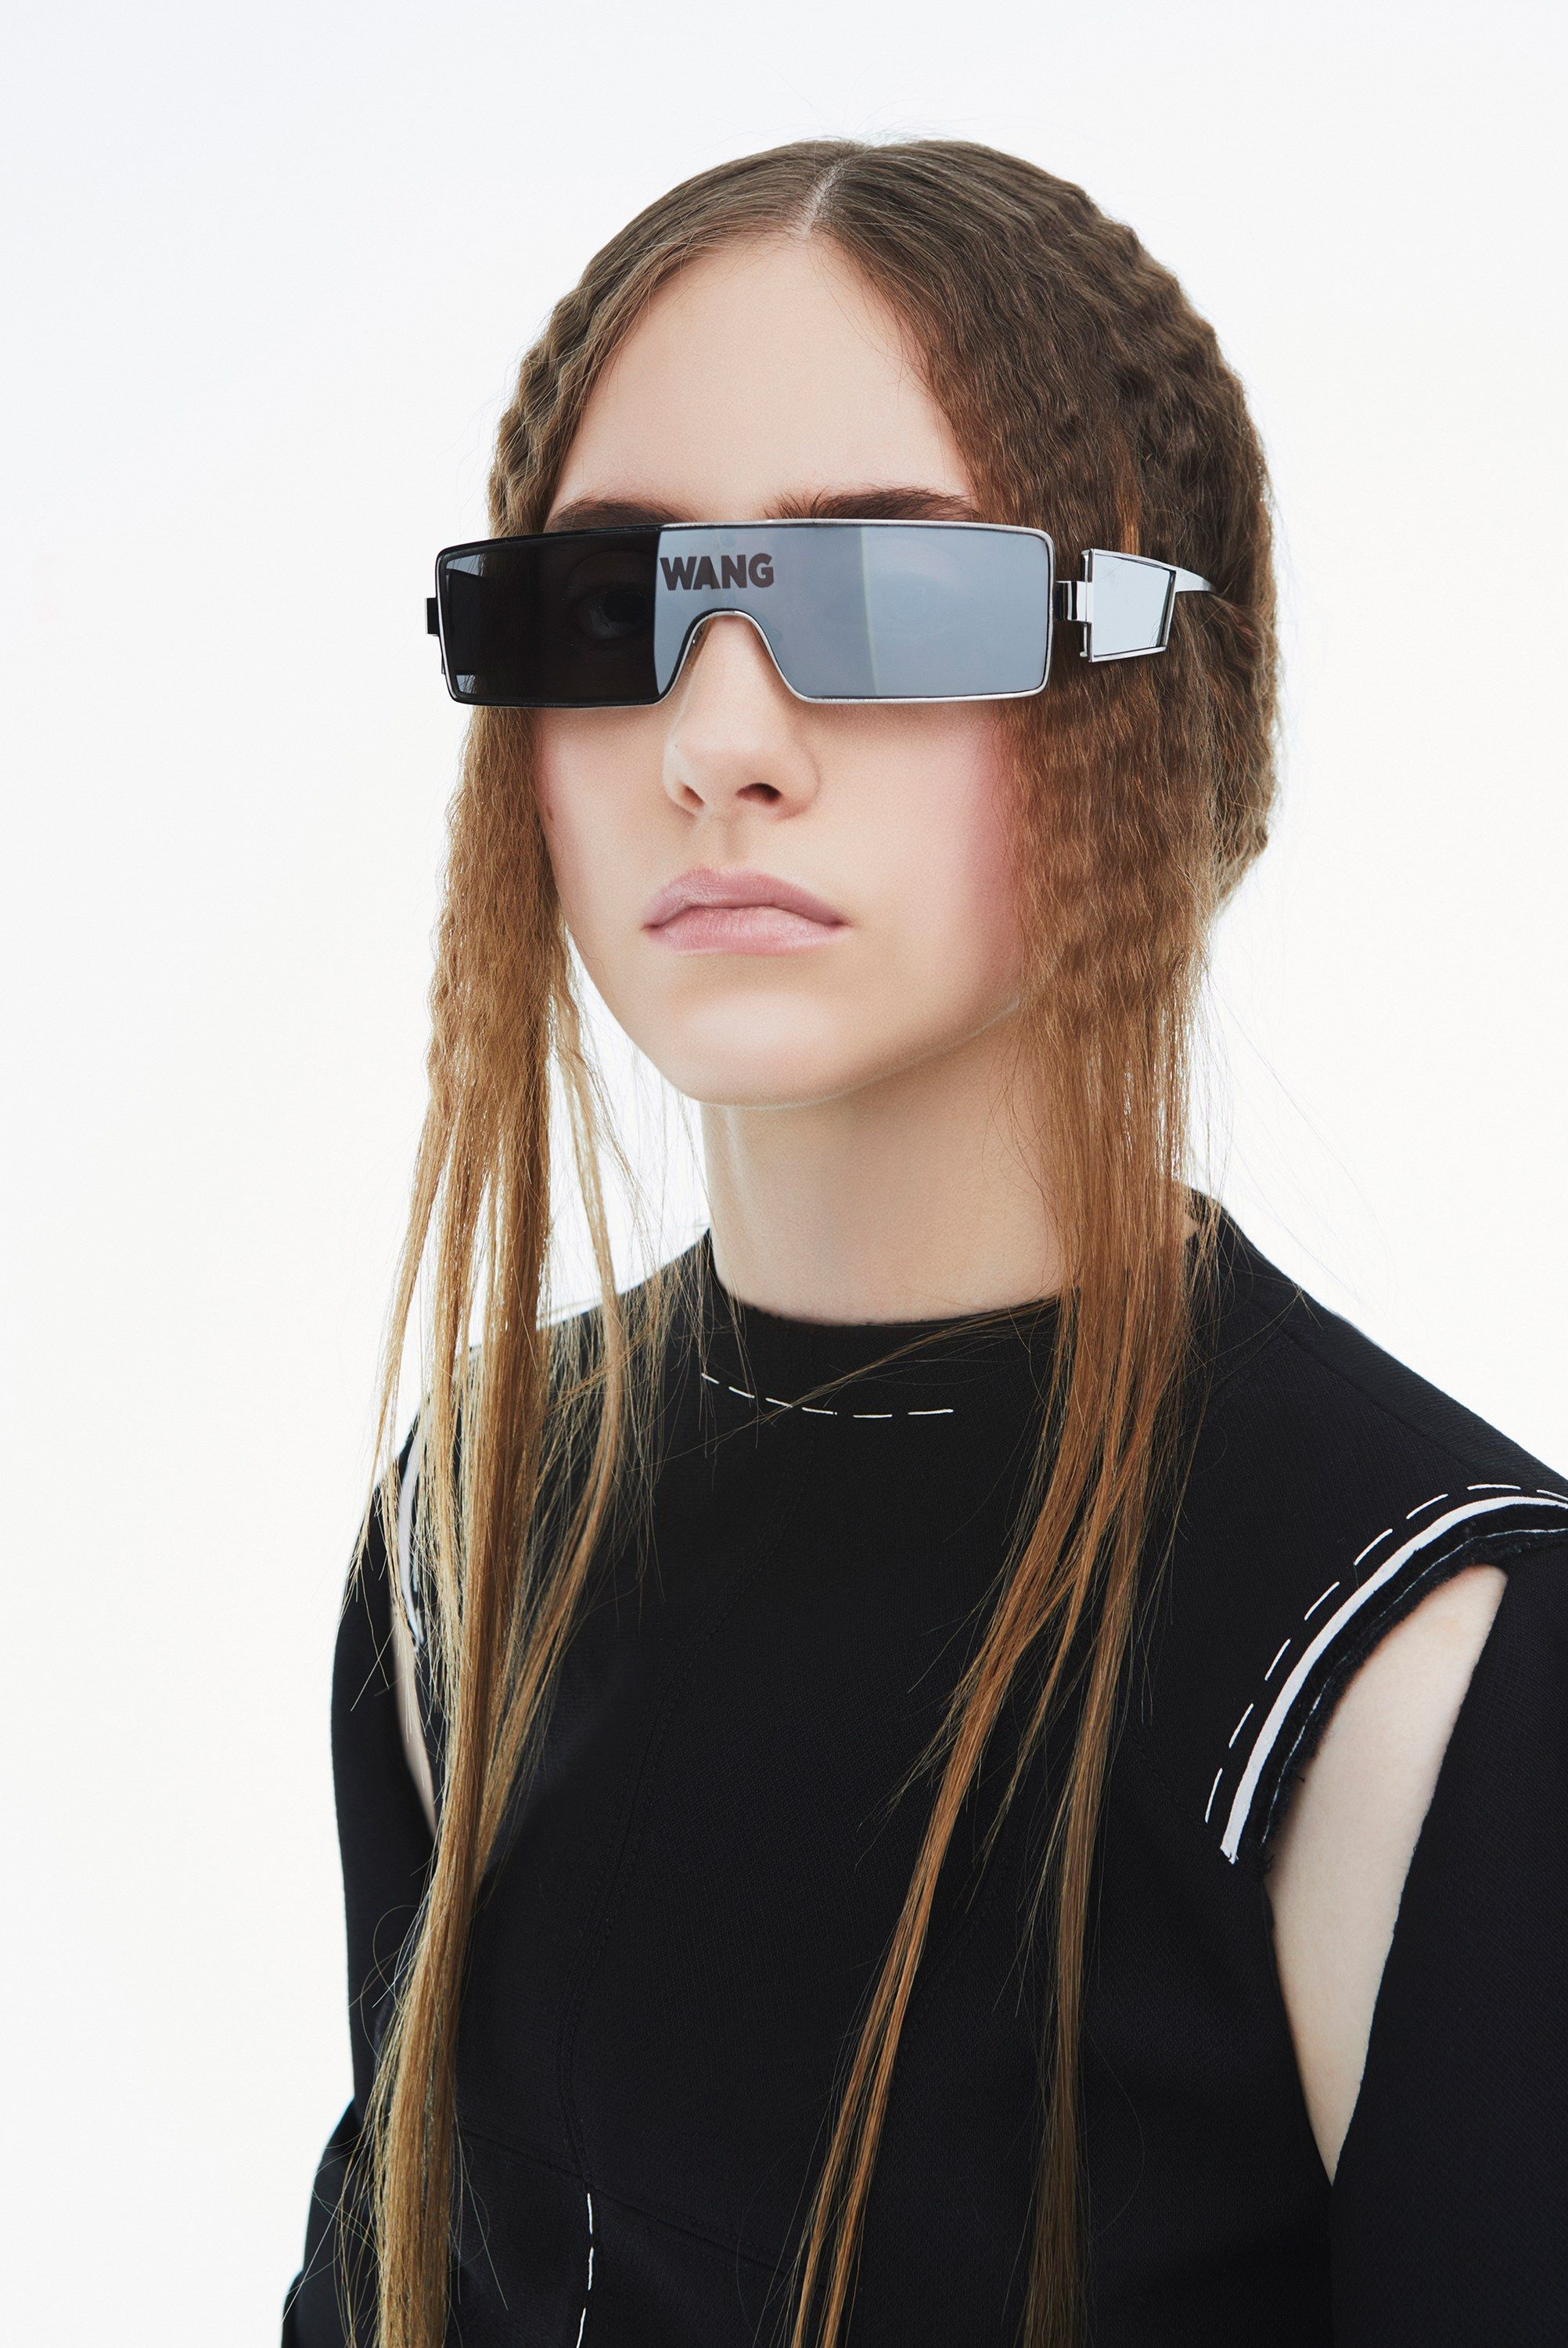 ded6a56edf0 Vera Wang Fall 2018 Ready-to-Wear Collection - Vogue. Follow us on FB or  find us on the web   eyecarefortcollins.com